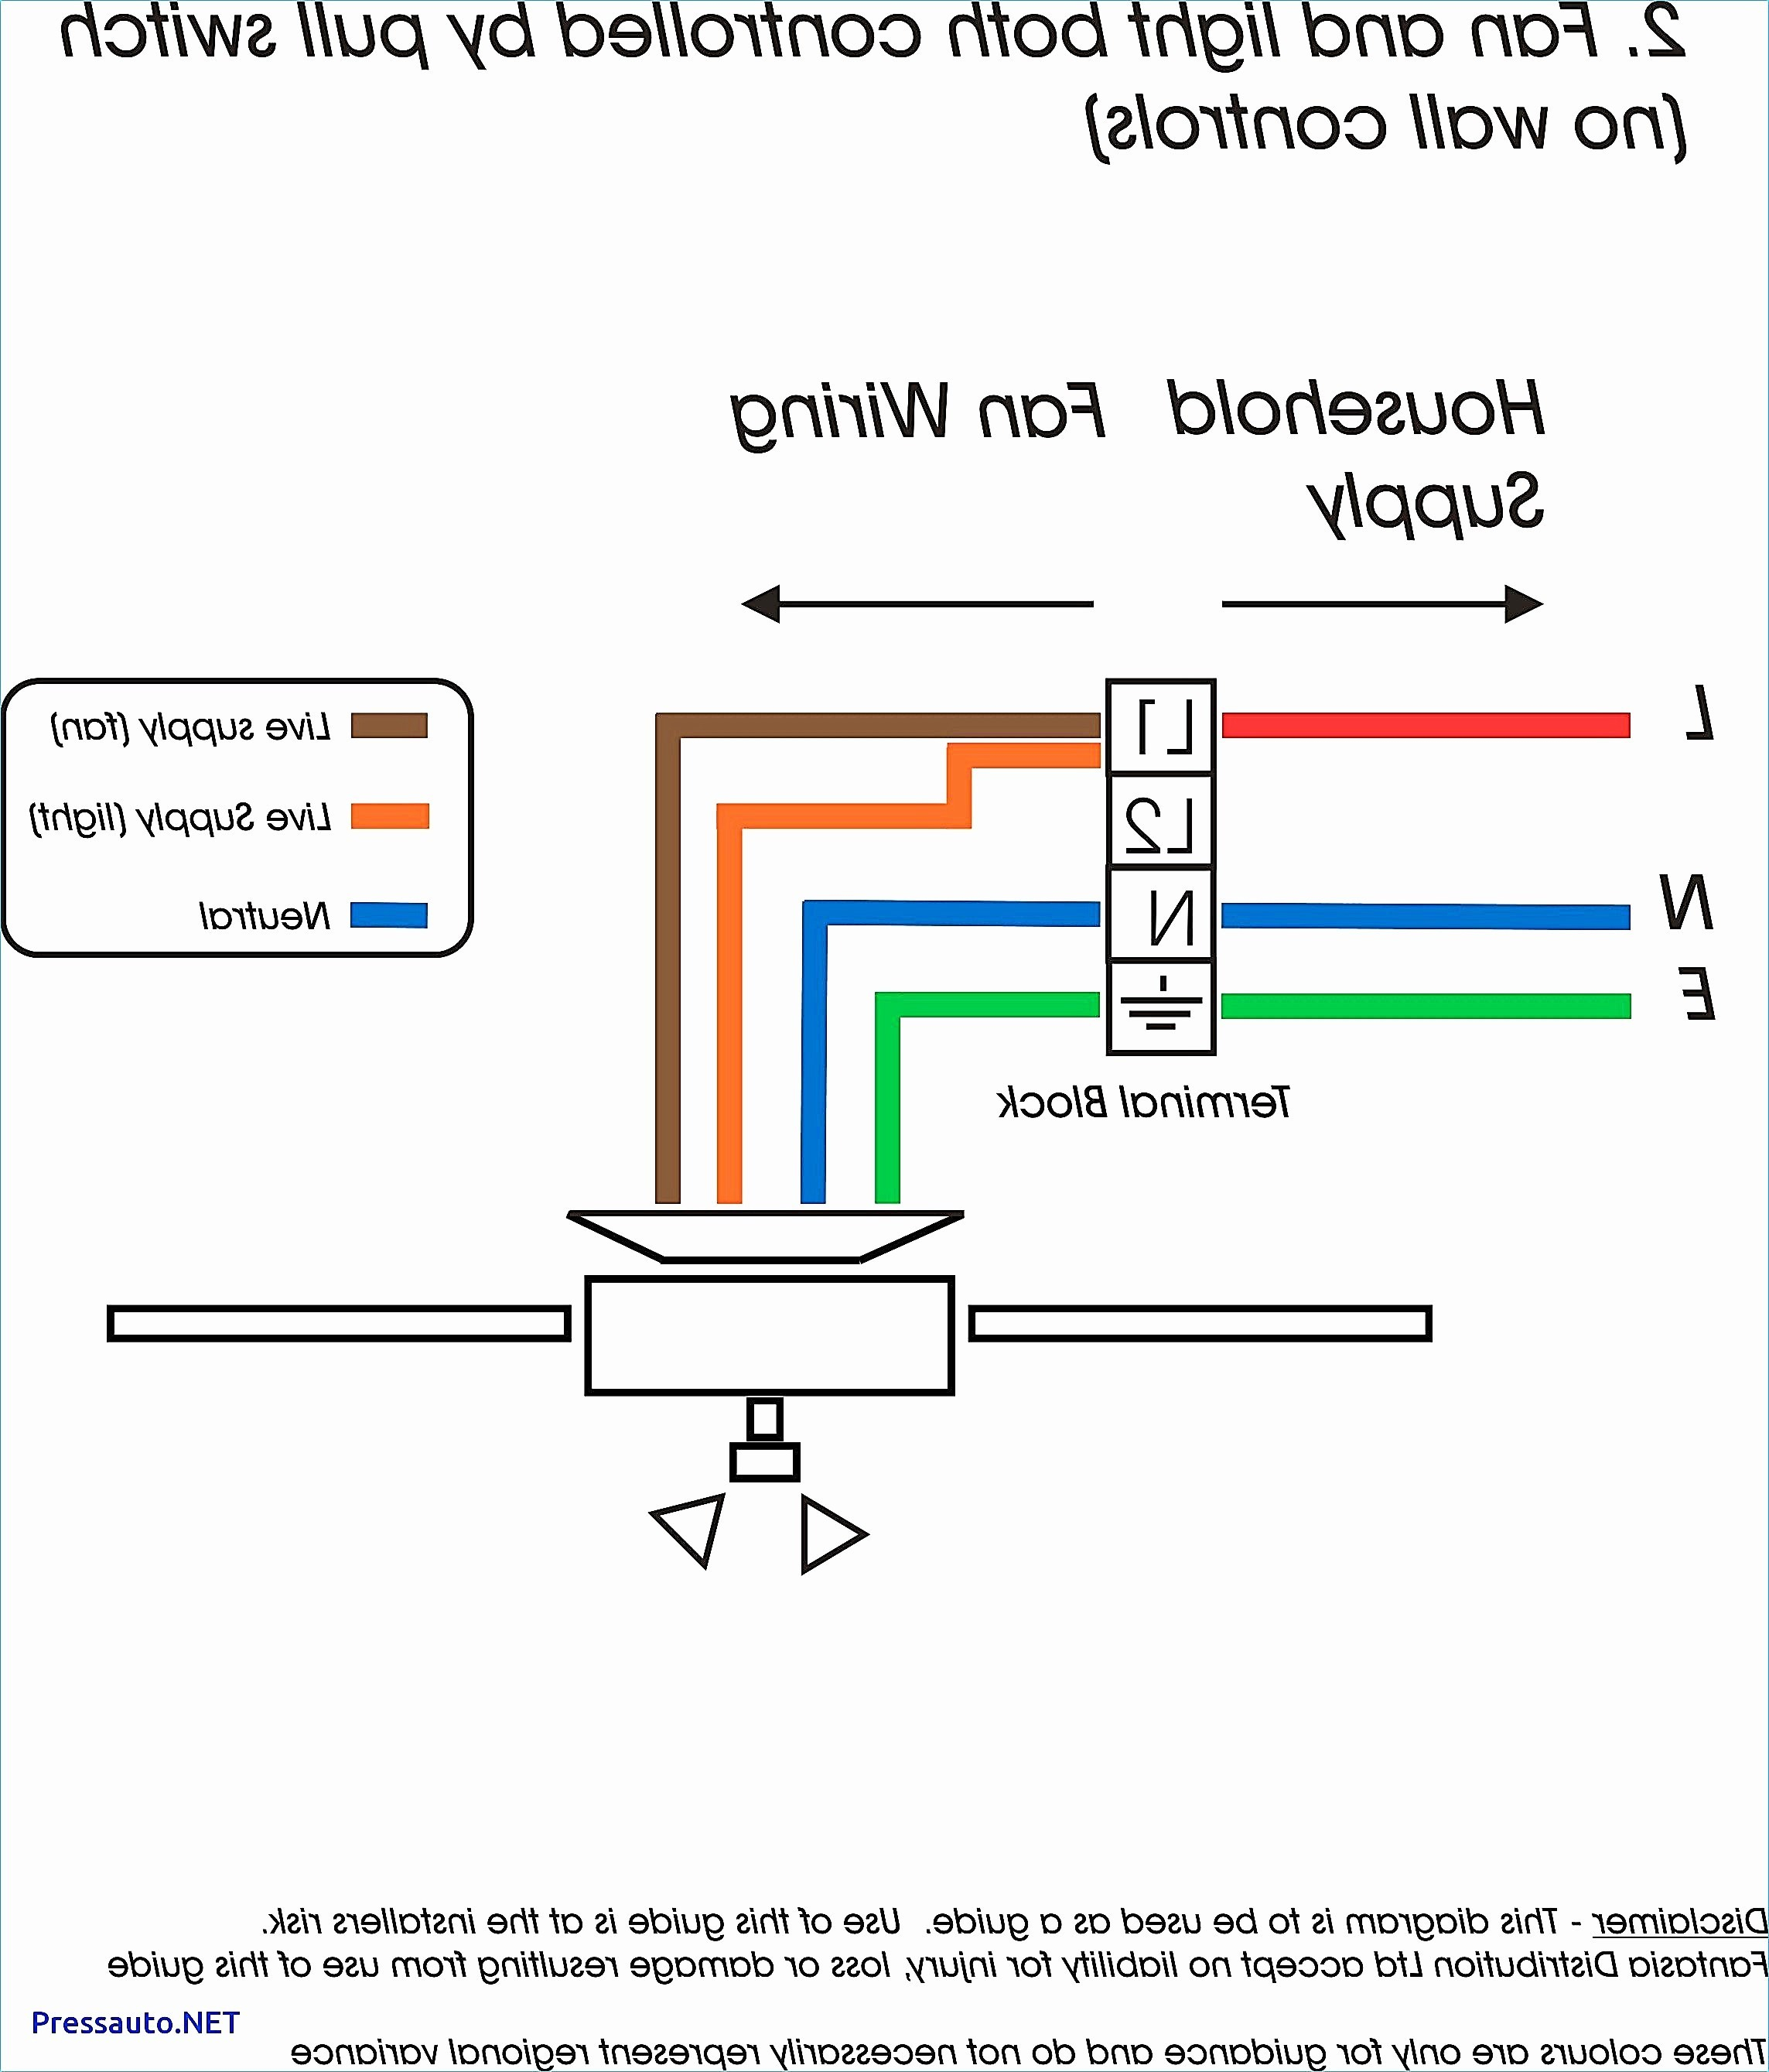 hdmi over cat5 wiring diagram Collection-Cat5 Wiring Diagram Best Cat5 Wiring Diagram Awesome 10-l